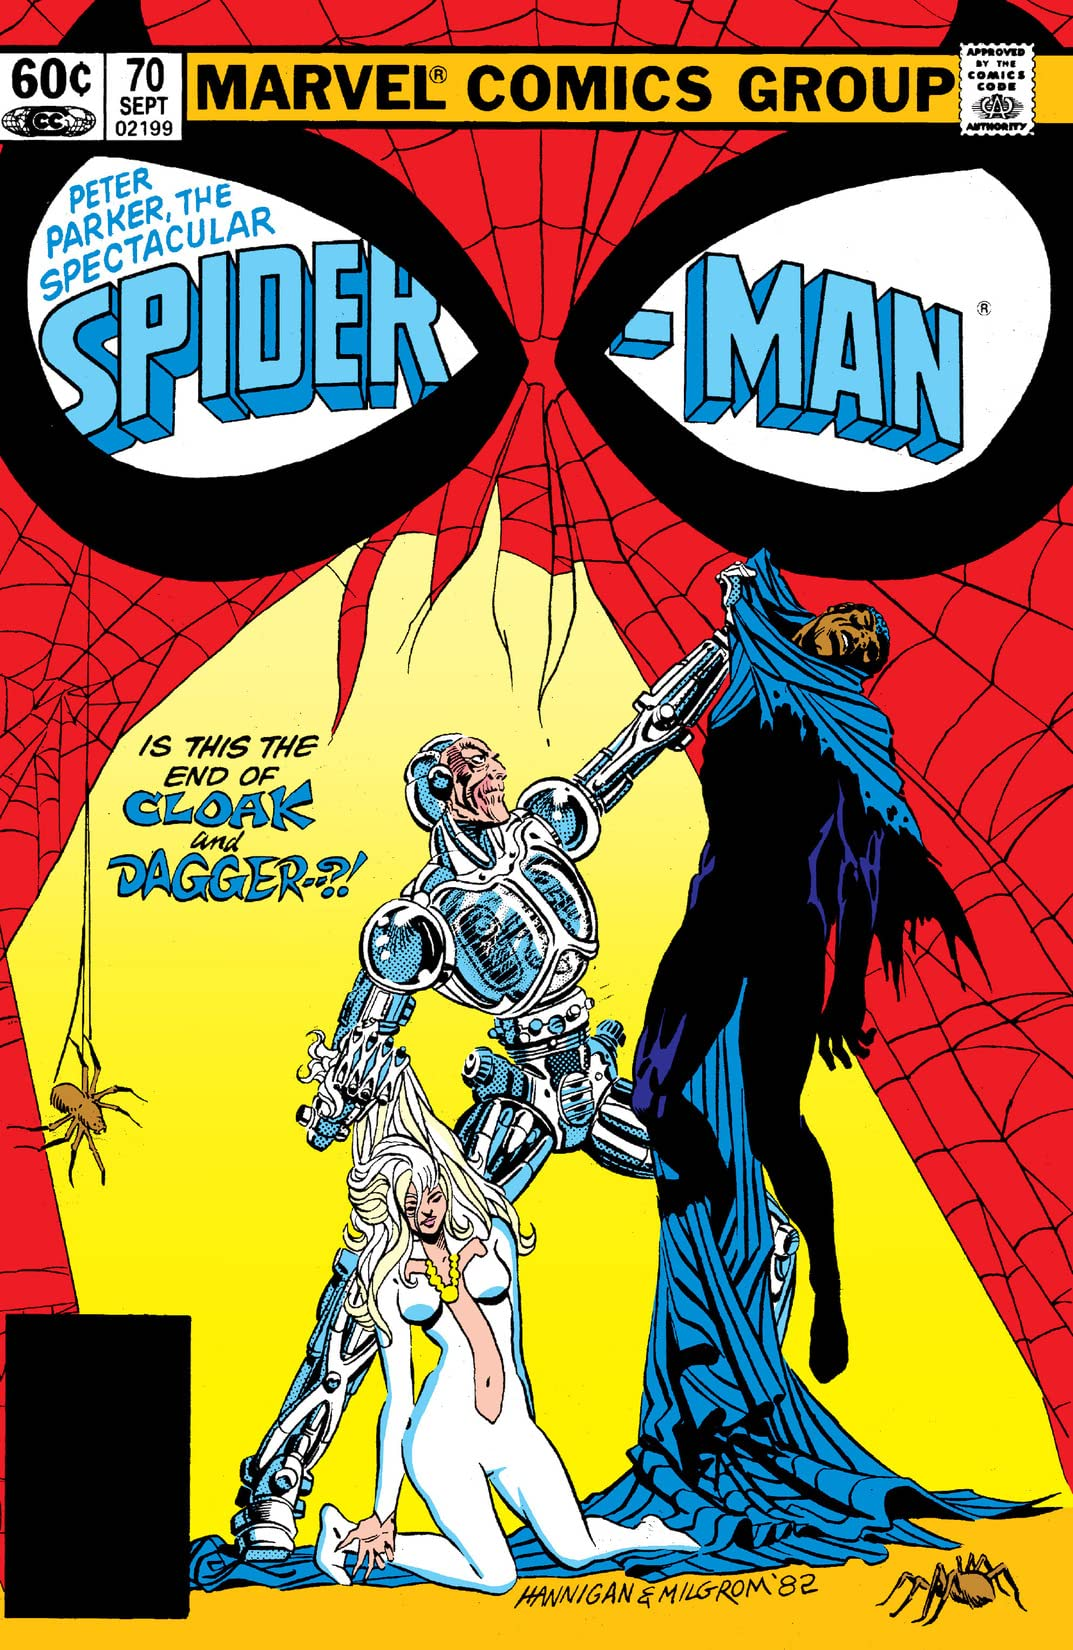 Peter Parker, The Spectacular Spider-Man (1976-1998) #70